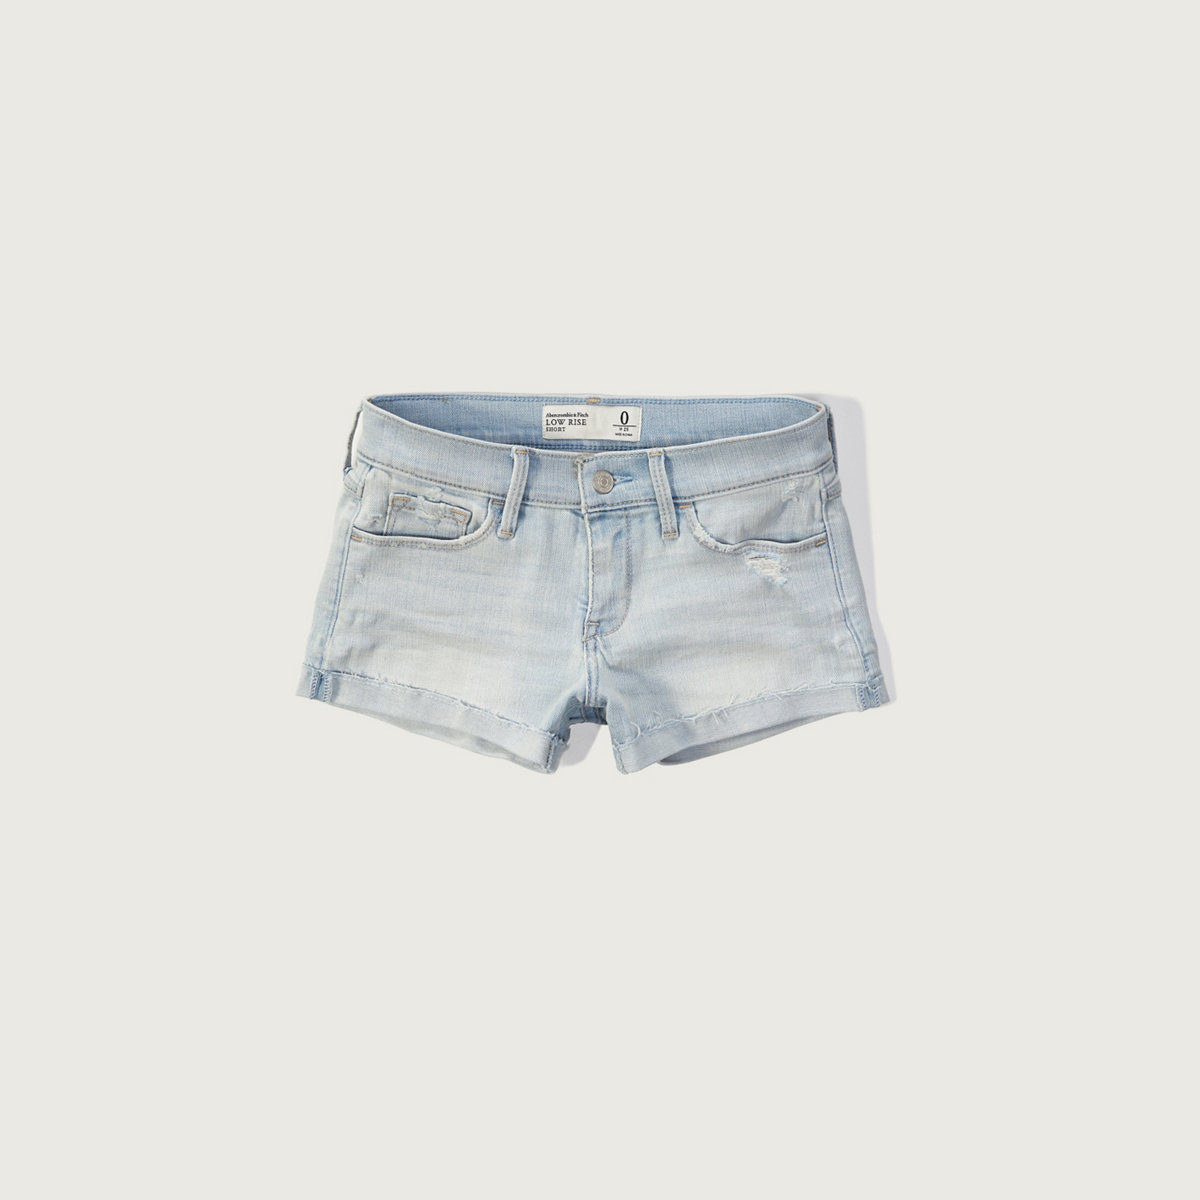 Low Rise 2 Inch Shorts